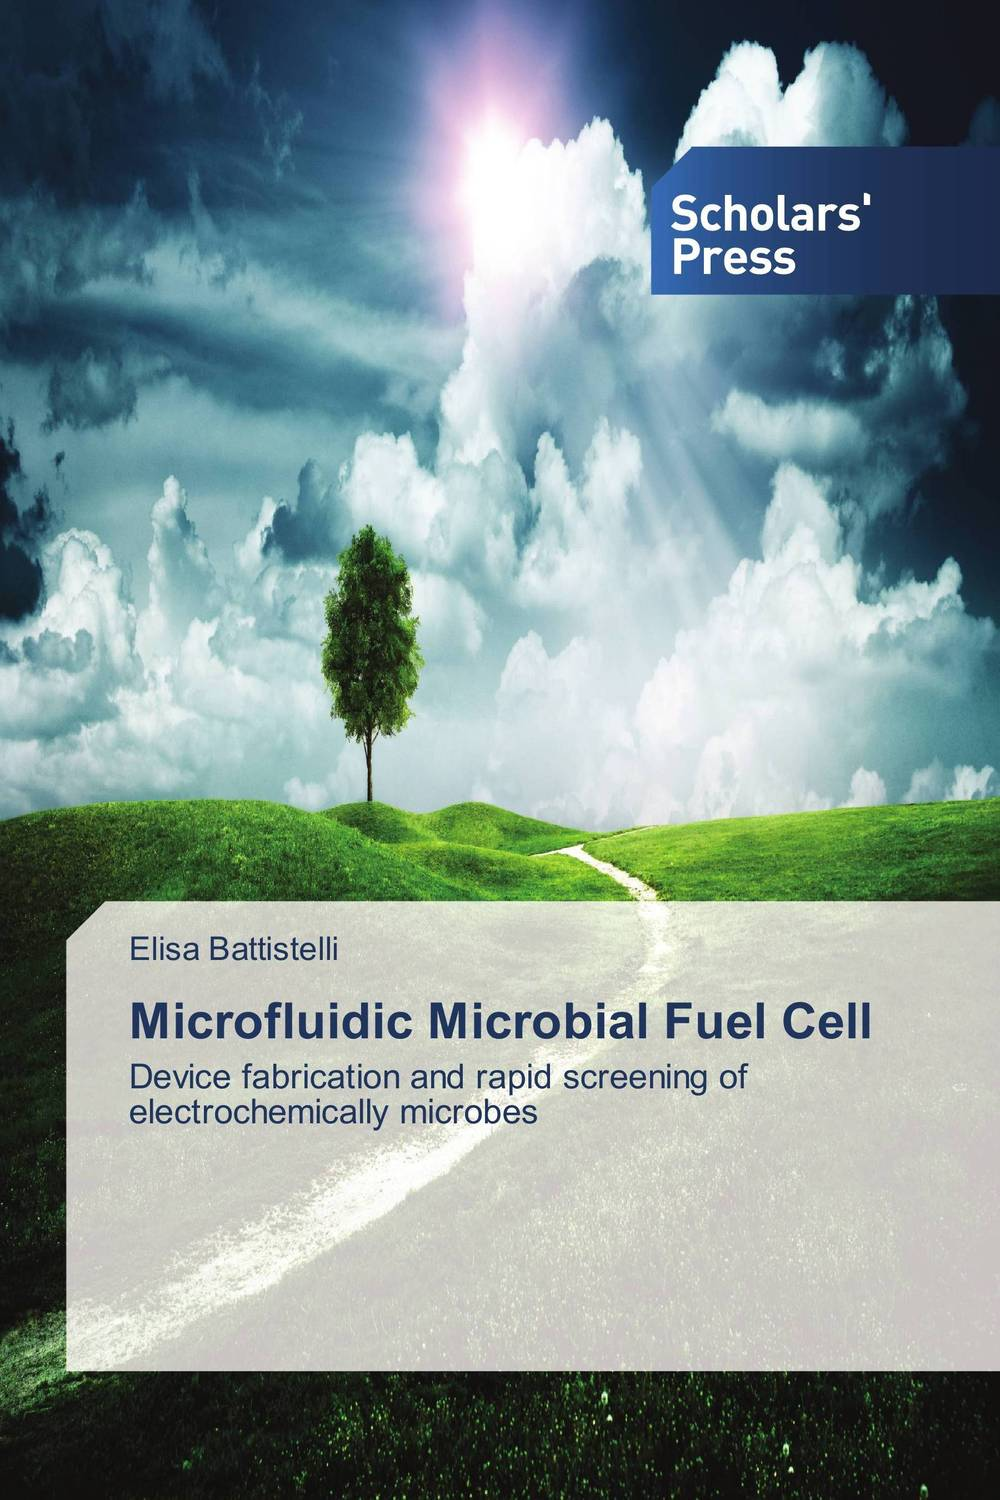 Microfluidic Microbial Fuel Cell plant microbial fuel cell for green electricity generation